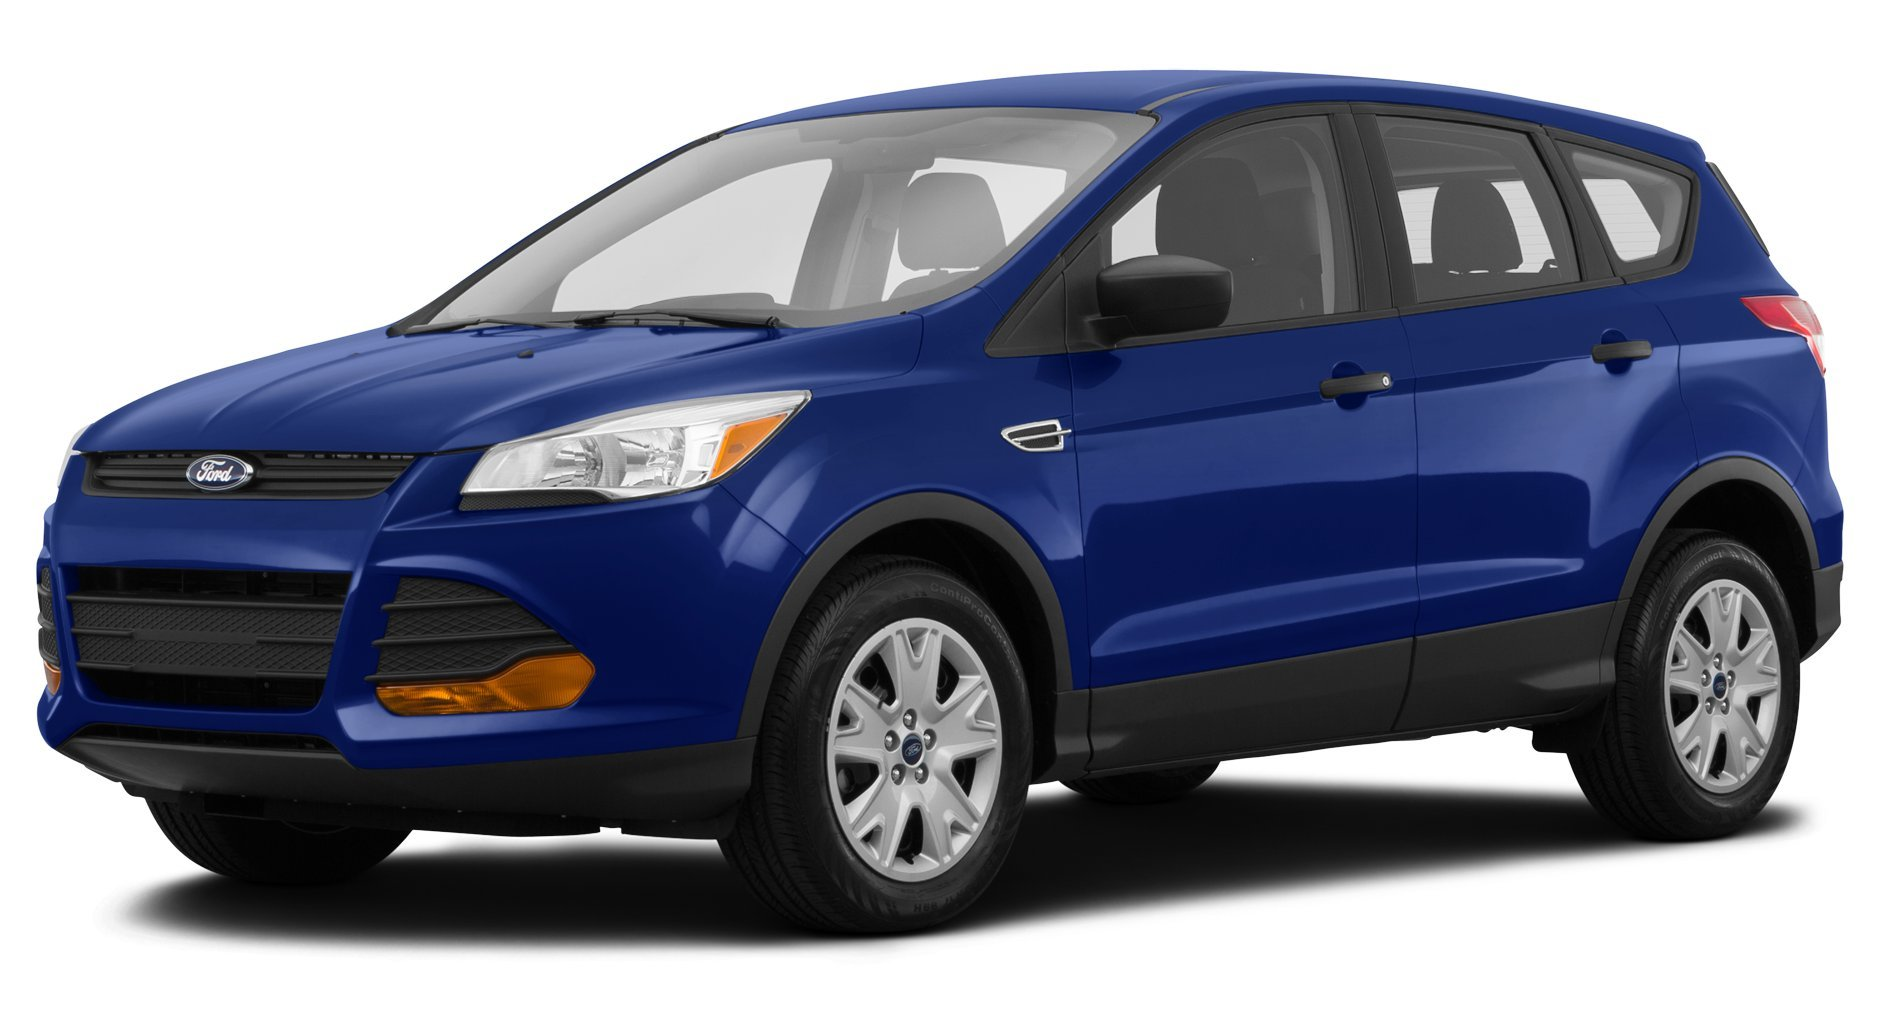 2015 ford escape reviews images and specs vehicles. Black Bedroom Furniture Sets. Home Design Ideas